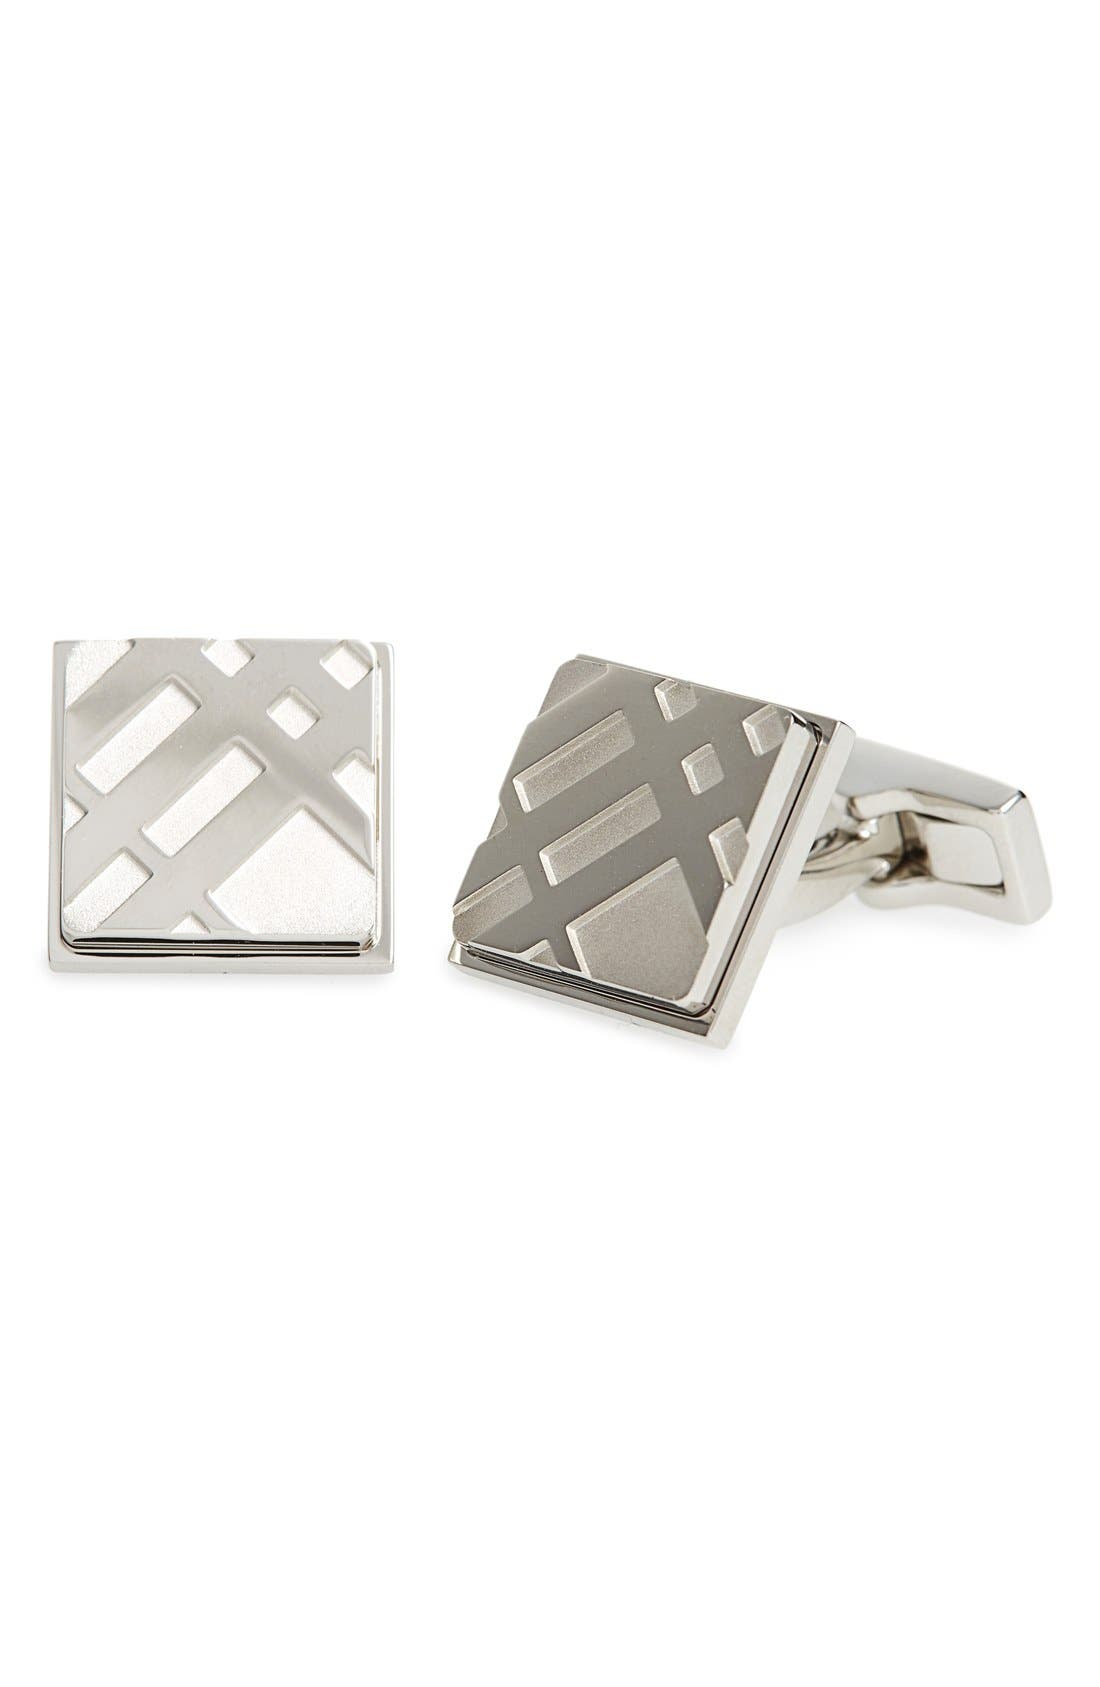 Square Cuff Links,                             Main thumbnail 1, color,                             040